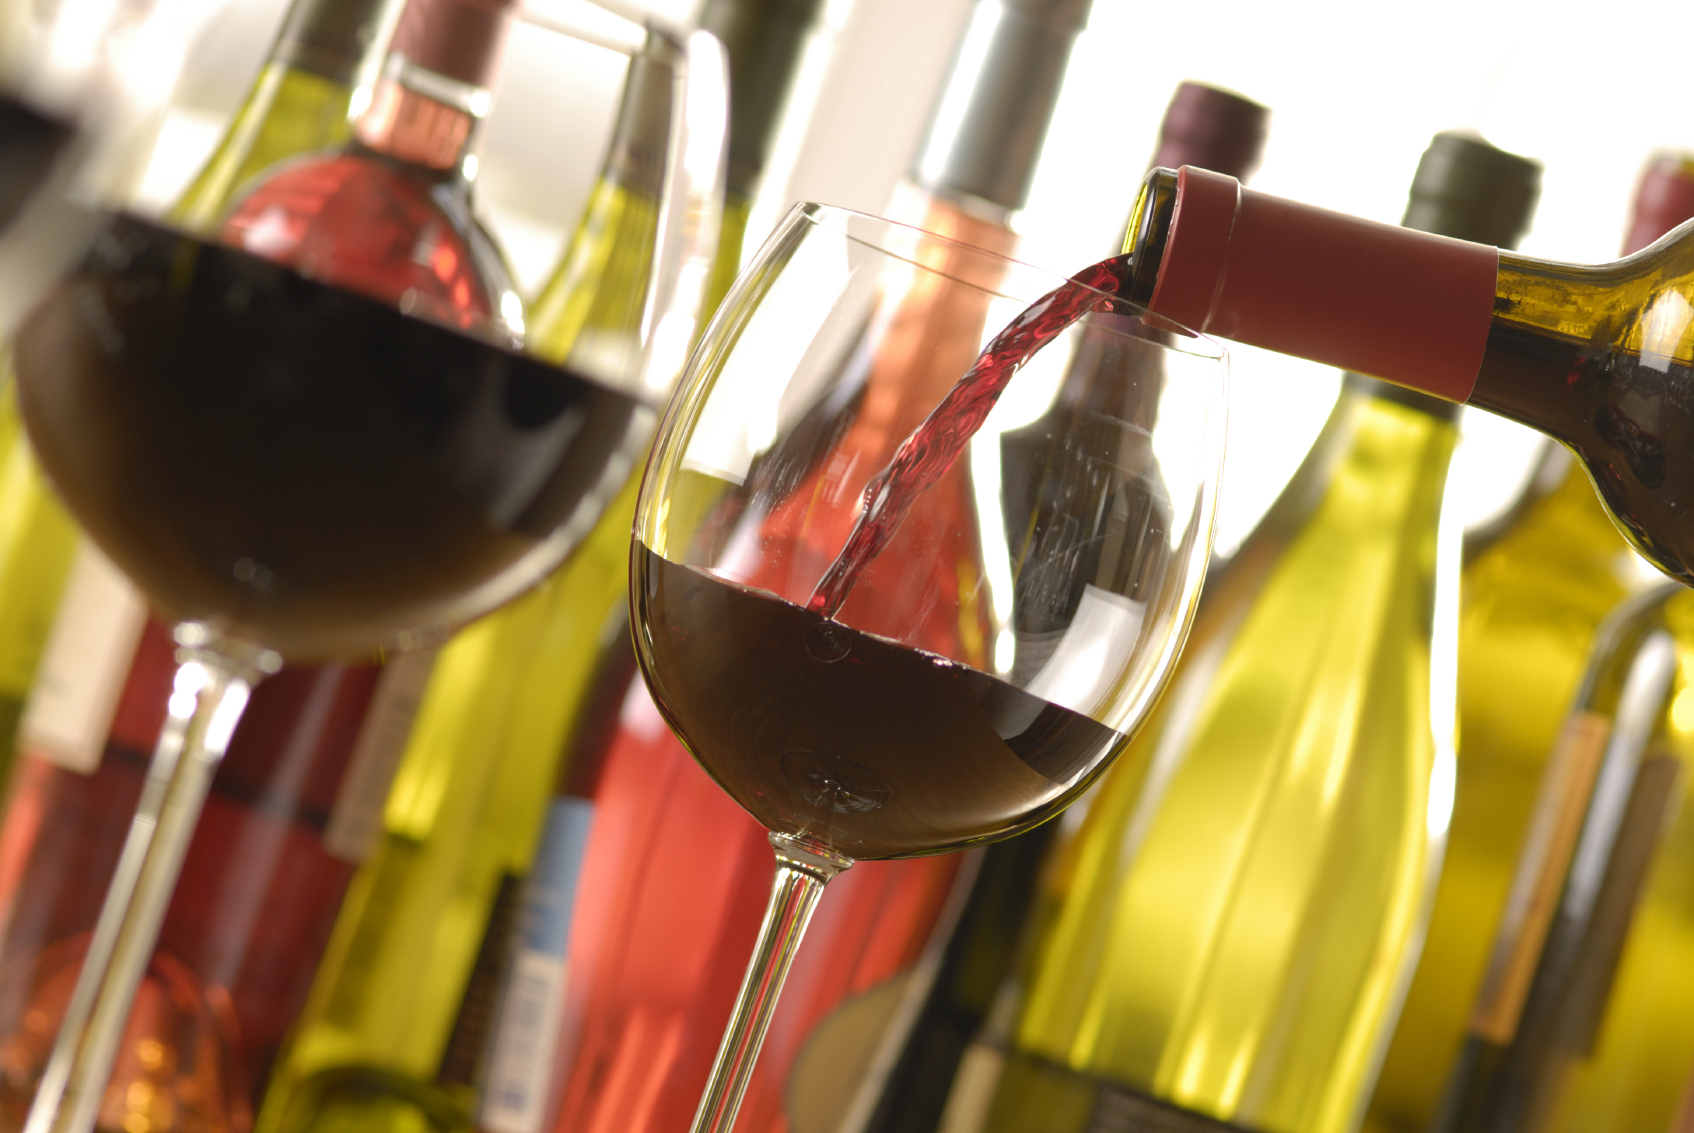 Tips to make Good Quality Wine at Home